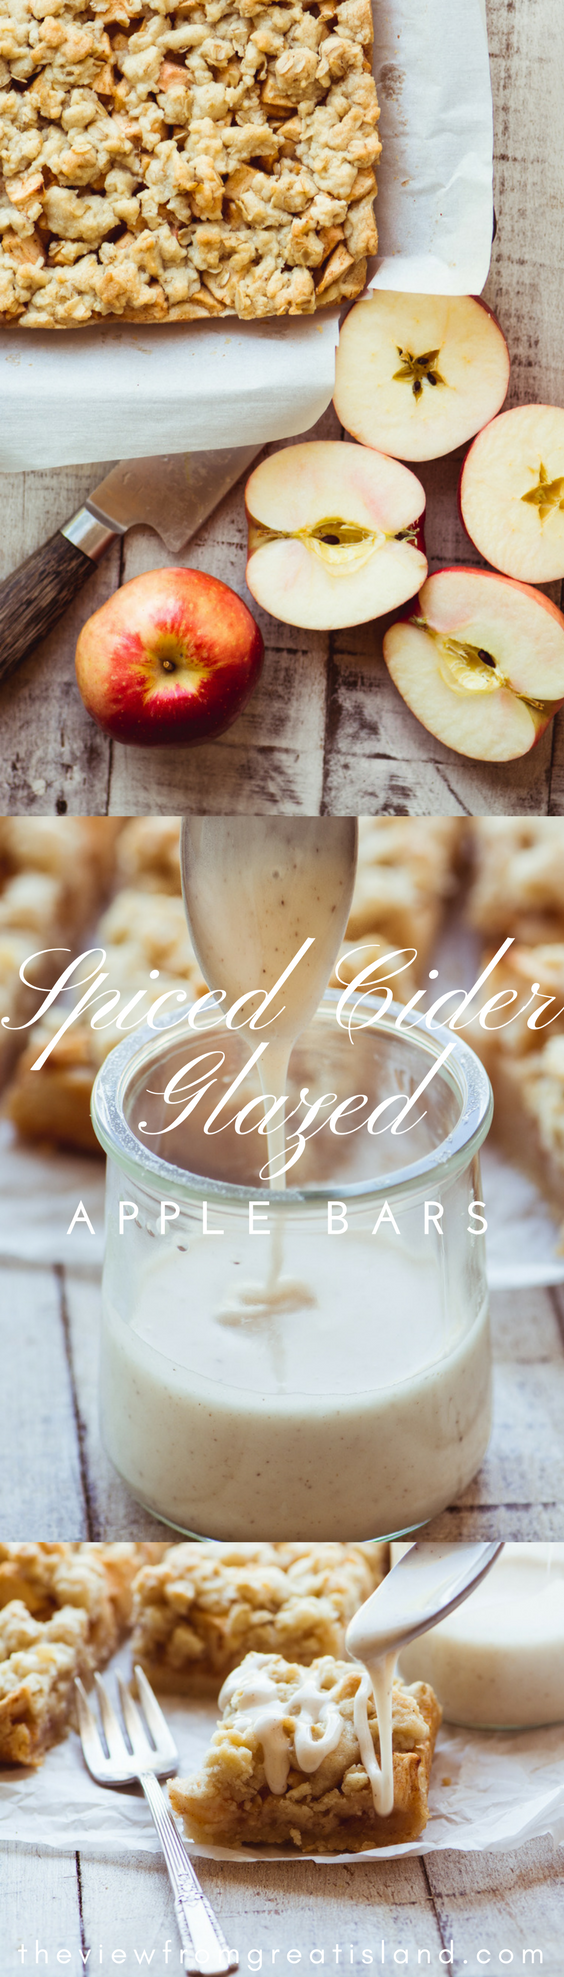 Spiced Cider Glazed Apple Bars pin